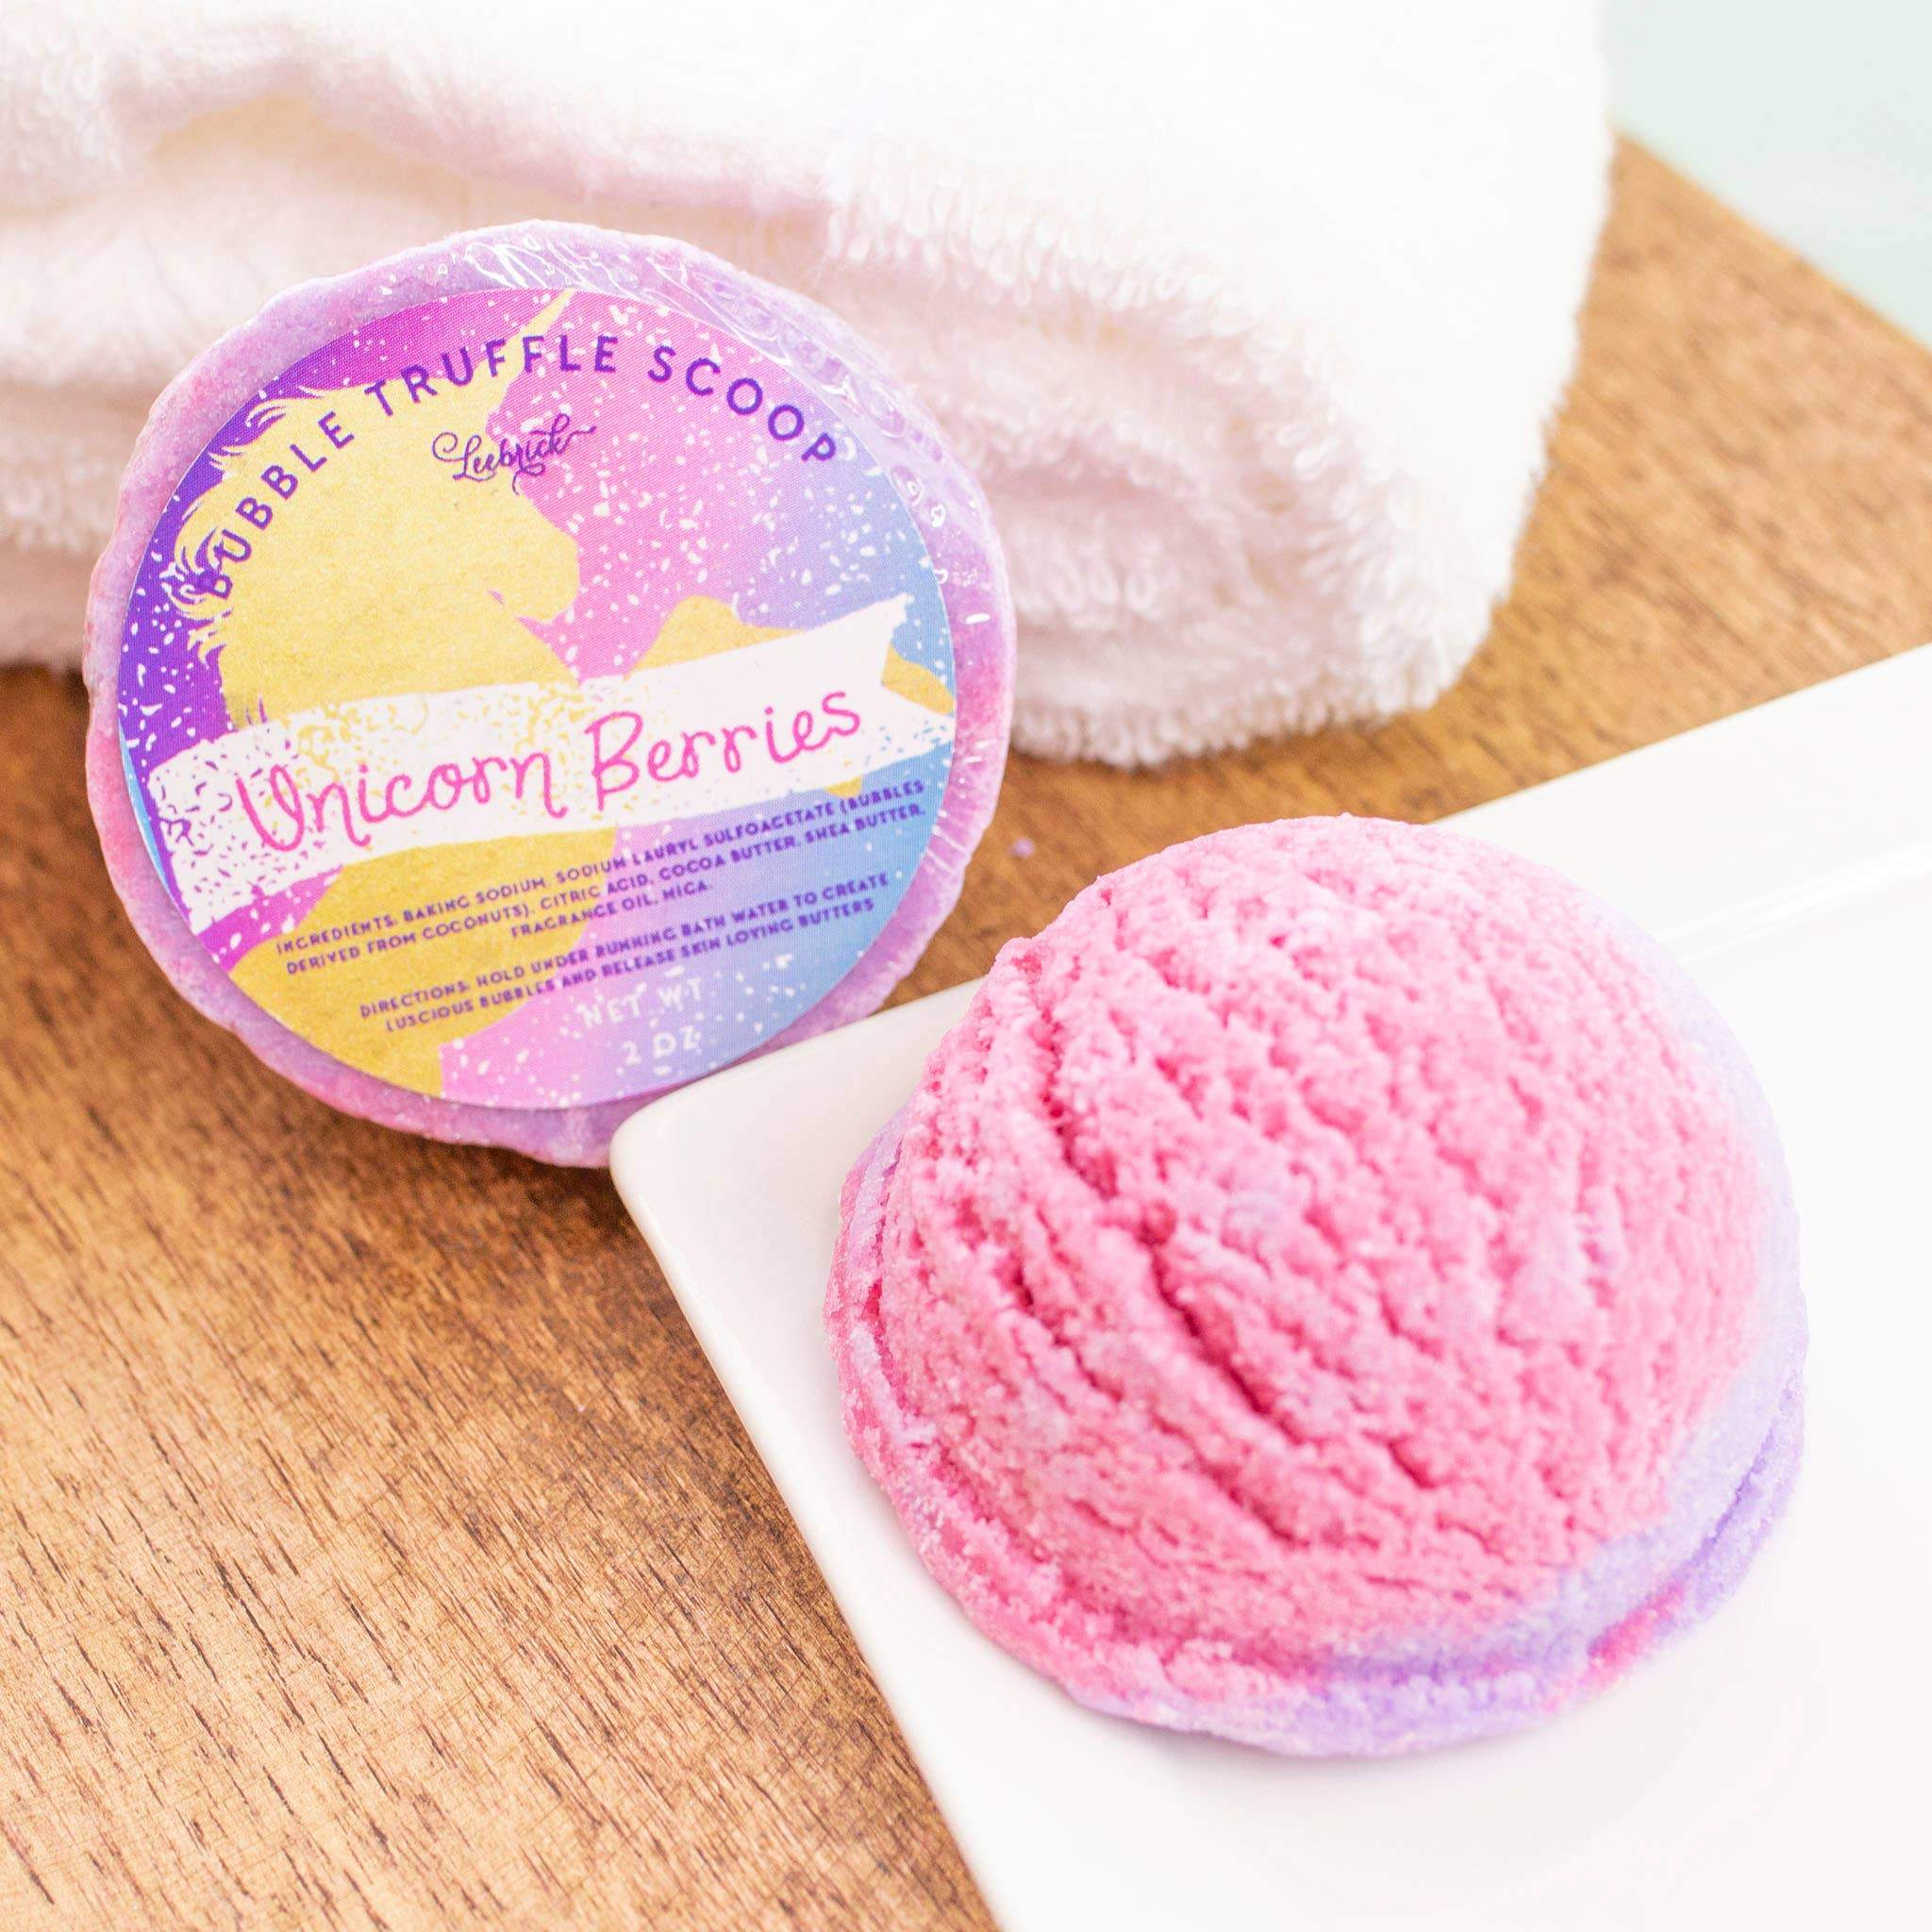 Unicorn Berries Bubble Truffle Scoop - Bath Melt Leebrick